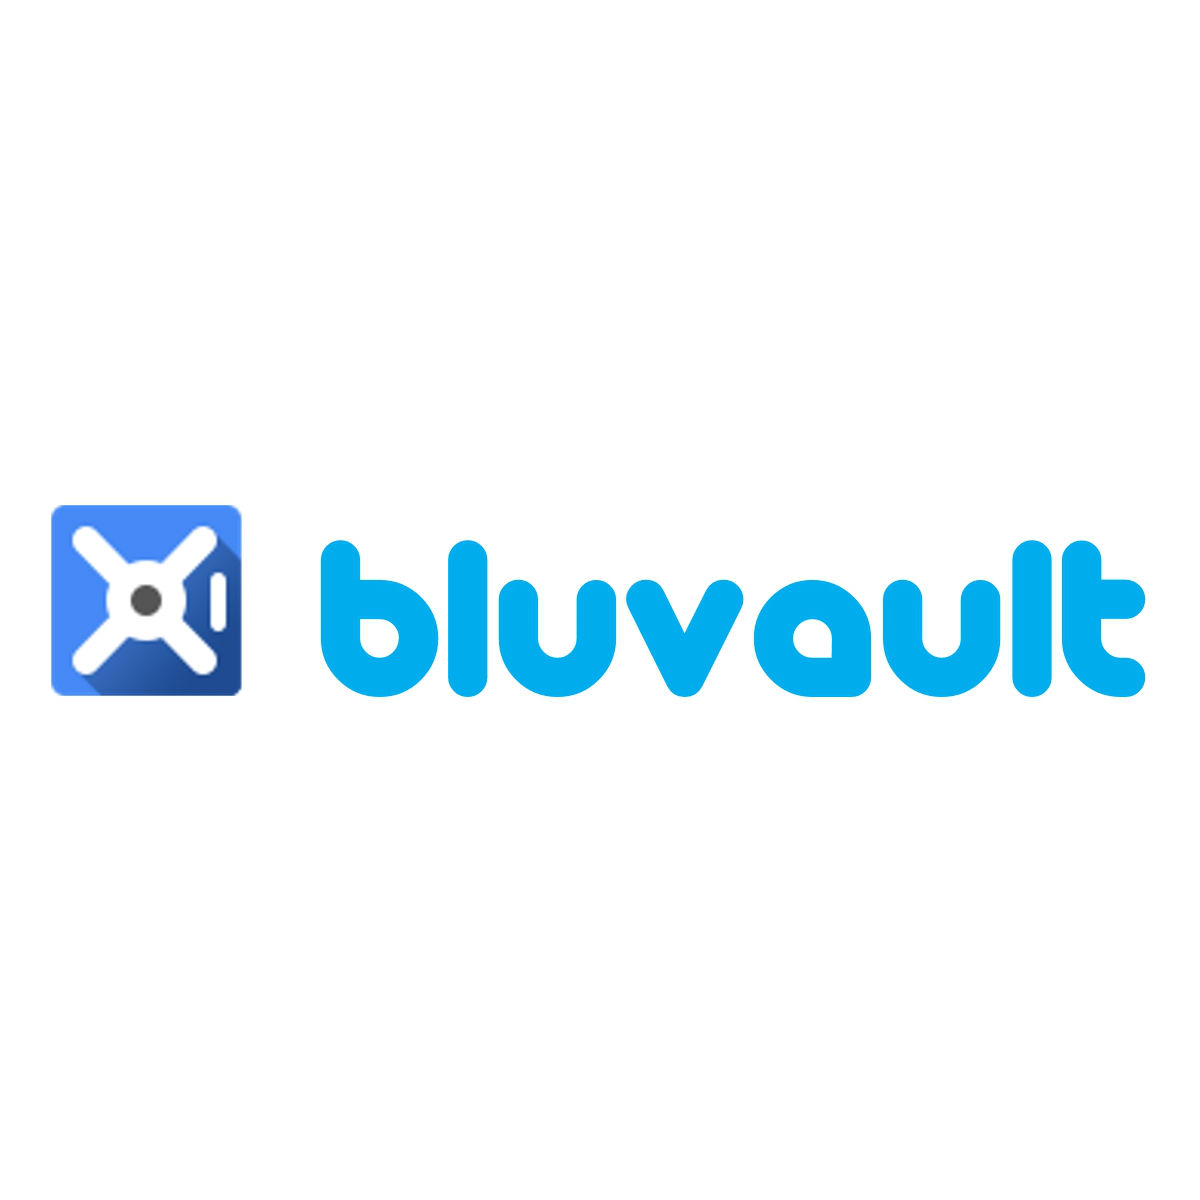 Bluvault Solutions, Inc.   Bluvault is a management consulting and technology company that specializes in transformation of business spend management processes. Our company offers solutions to support clients looking for PTP Software implementations, Systems Integrations, Accounts Payable Automation, and Supplier Enablement.